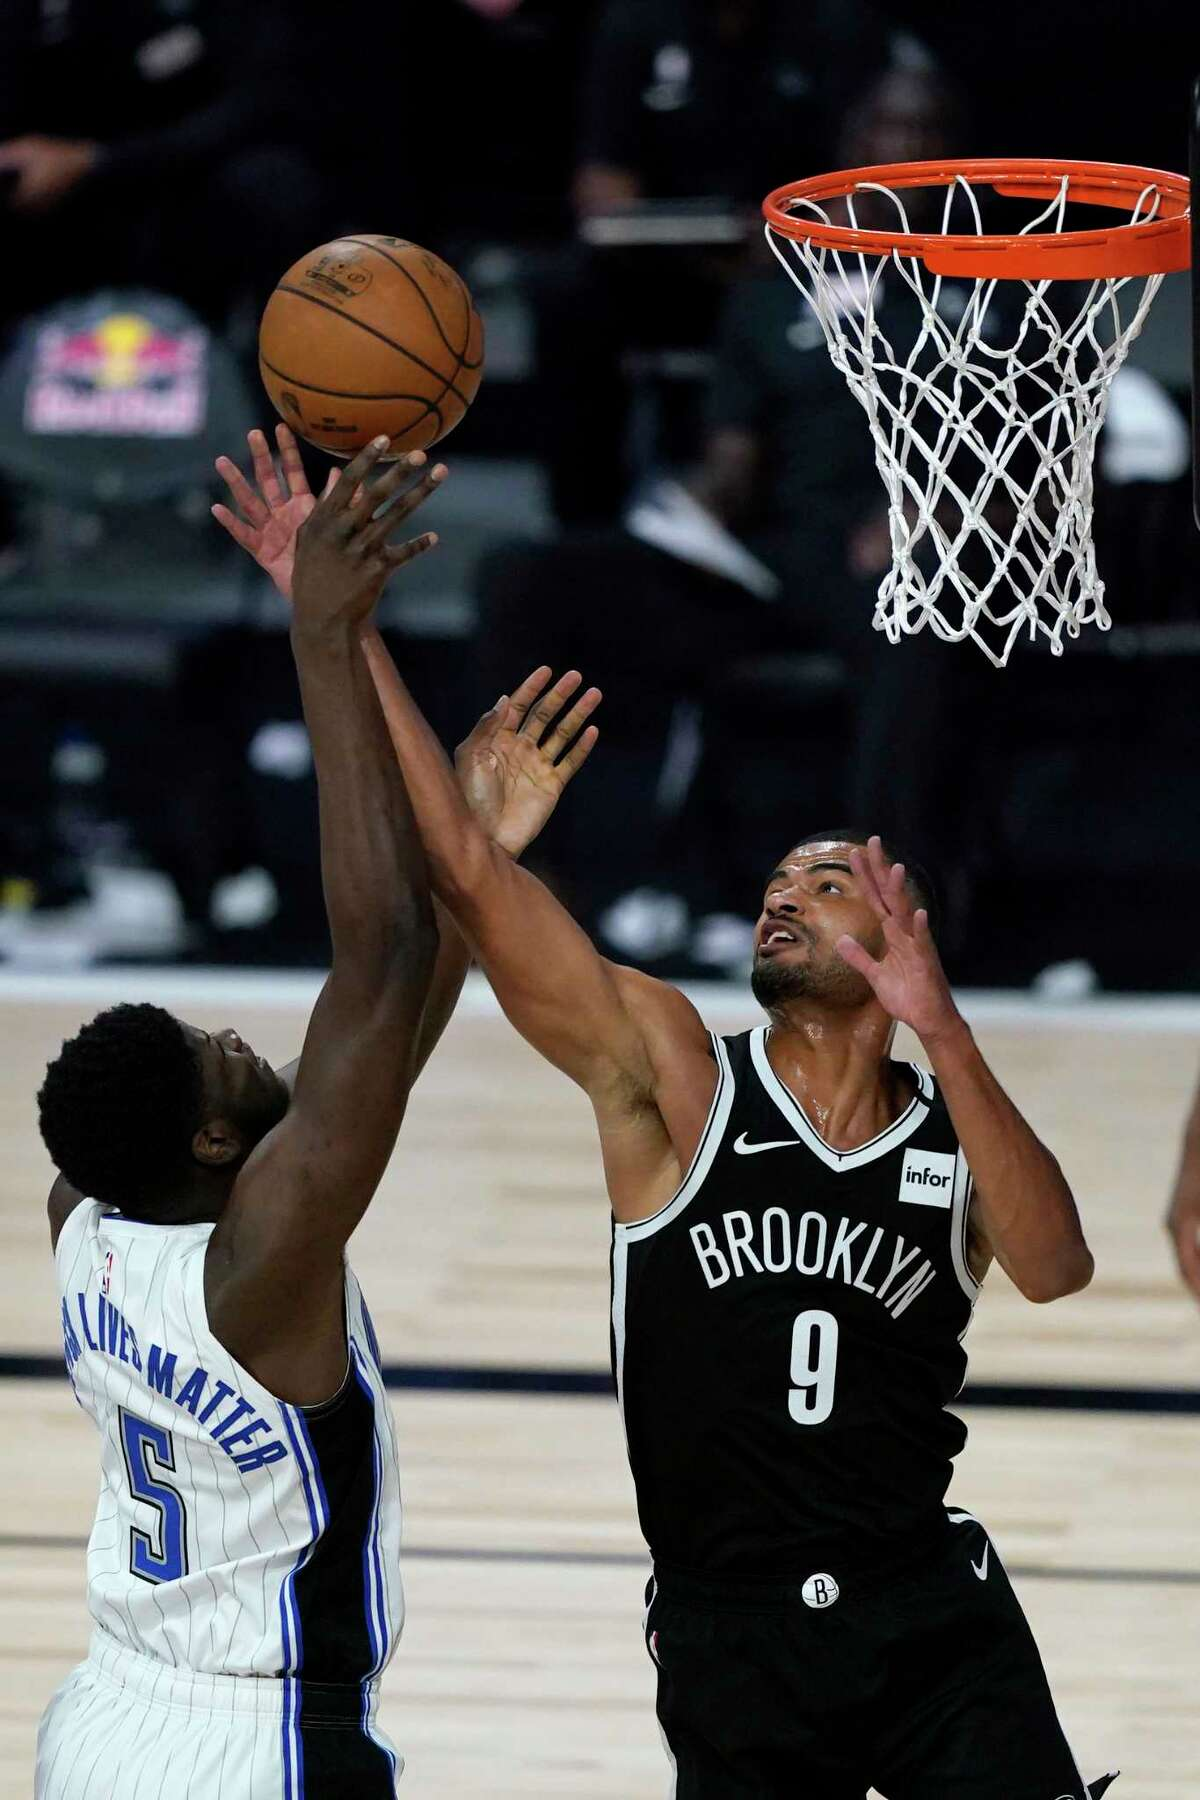 Brooklyn Nets' Timothe Luwawu-Cabarrot (9) and Orlando Magic's Mo Bamba (5) reach for a rebound during the second half of an NBA basketball game Friday, July 31, 2020, in Lake Buena Vista, Fla. (AP Photo/Ashley Landis, Pool)